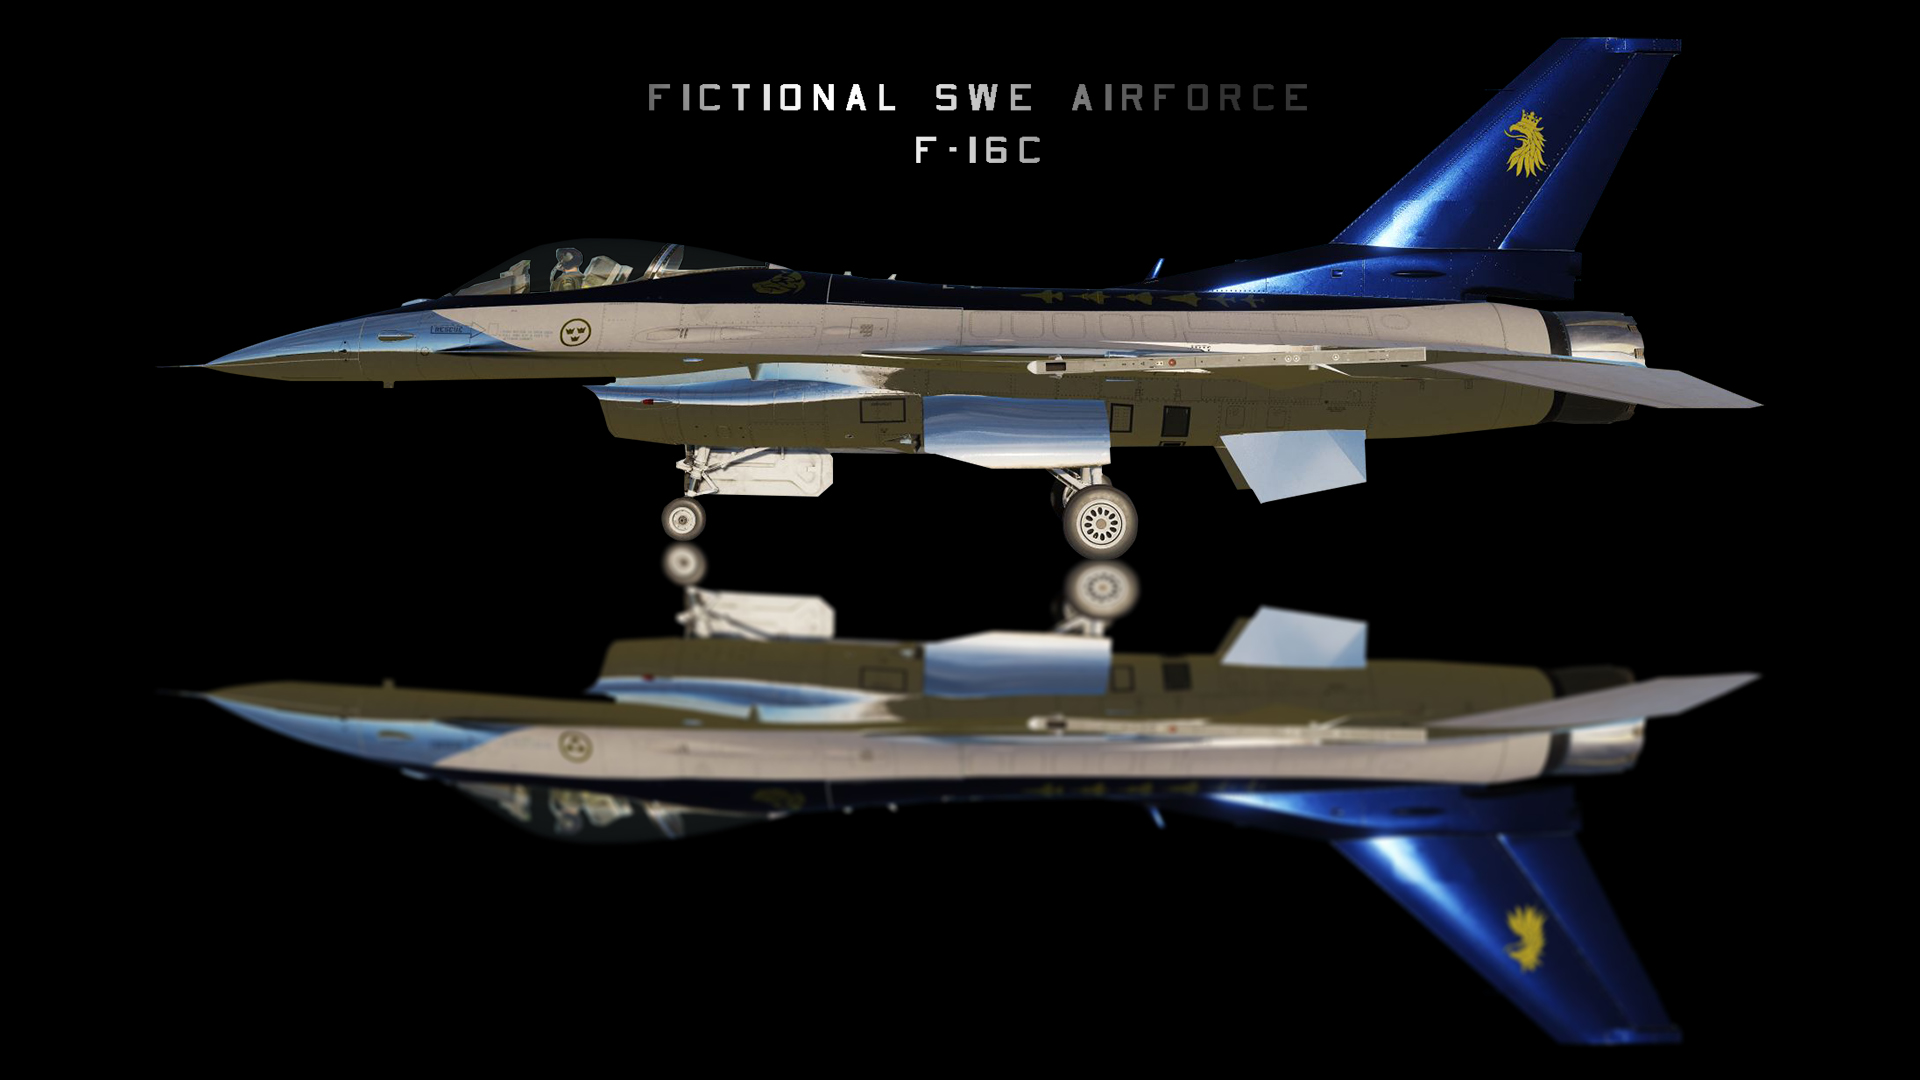 Fictonal Swedish Airforce Airshow skin